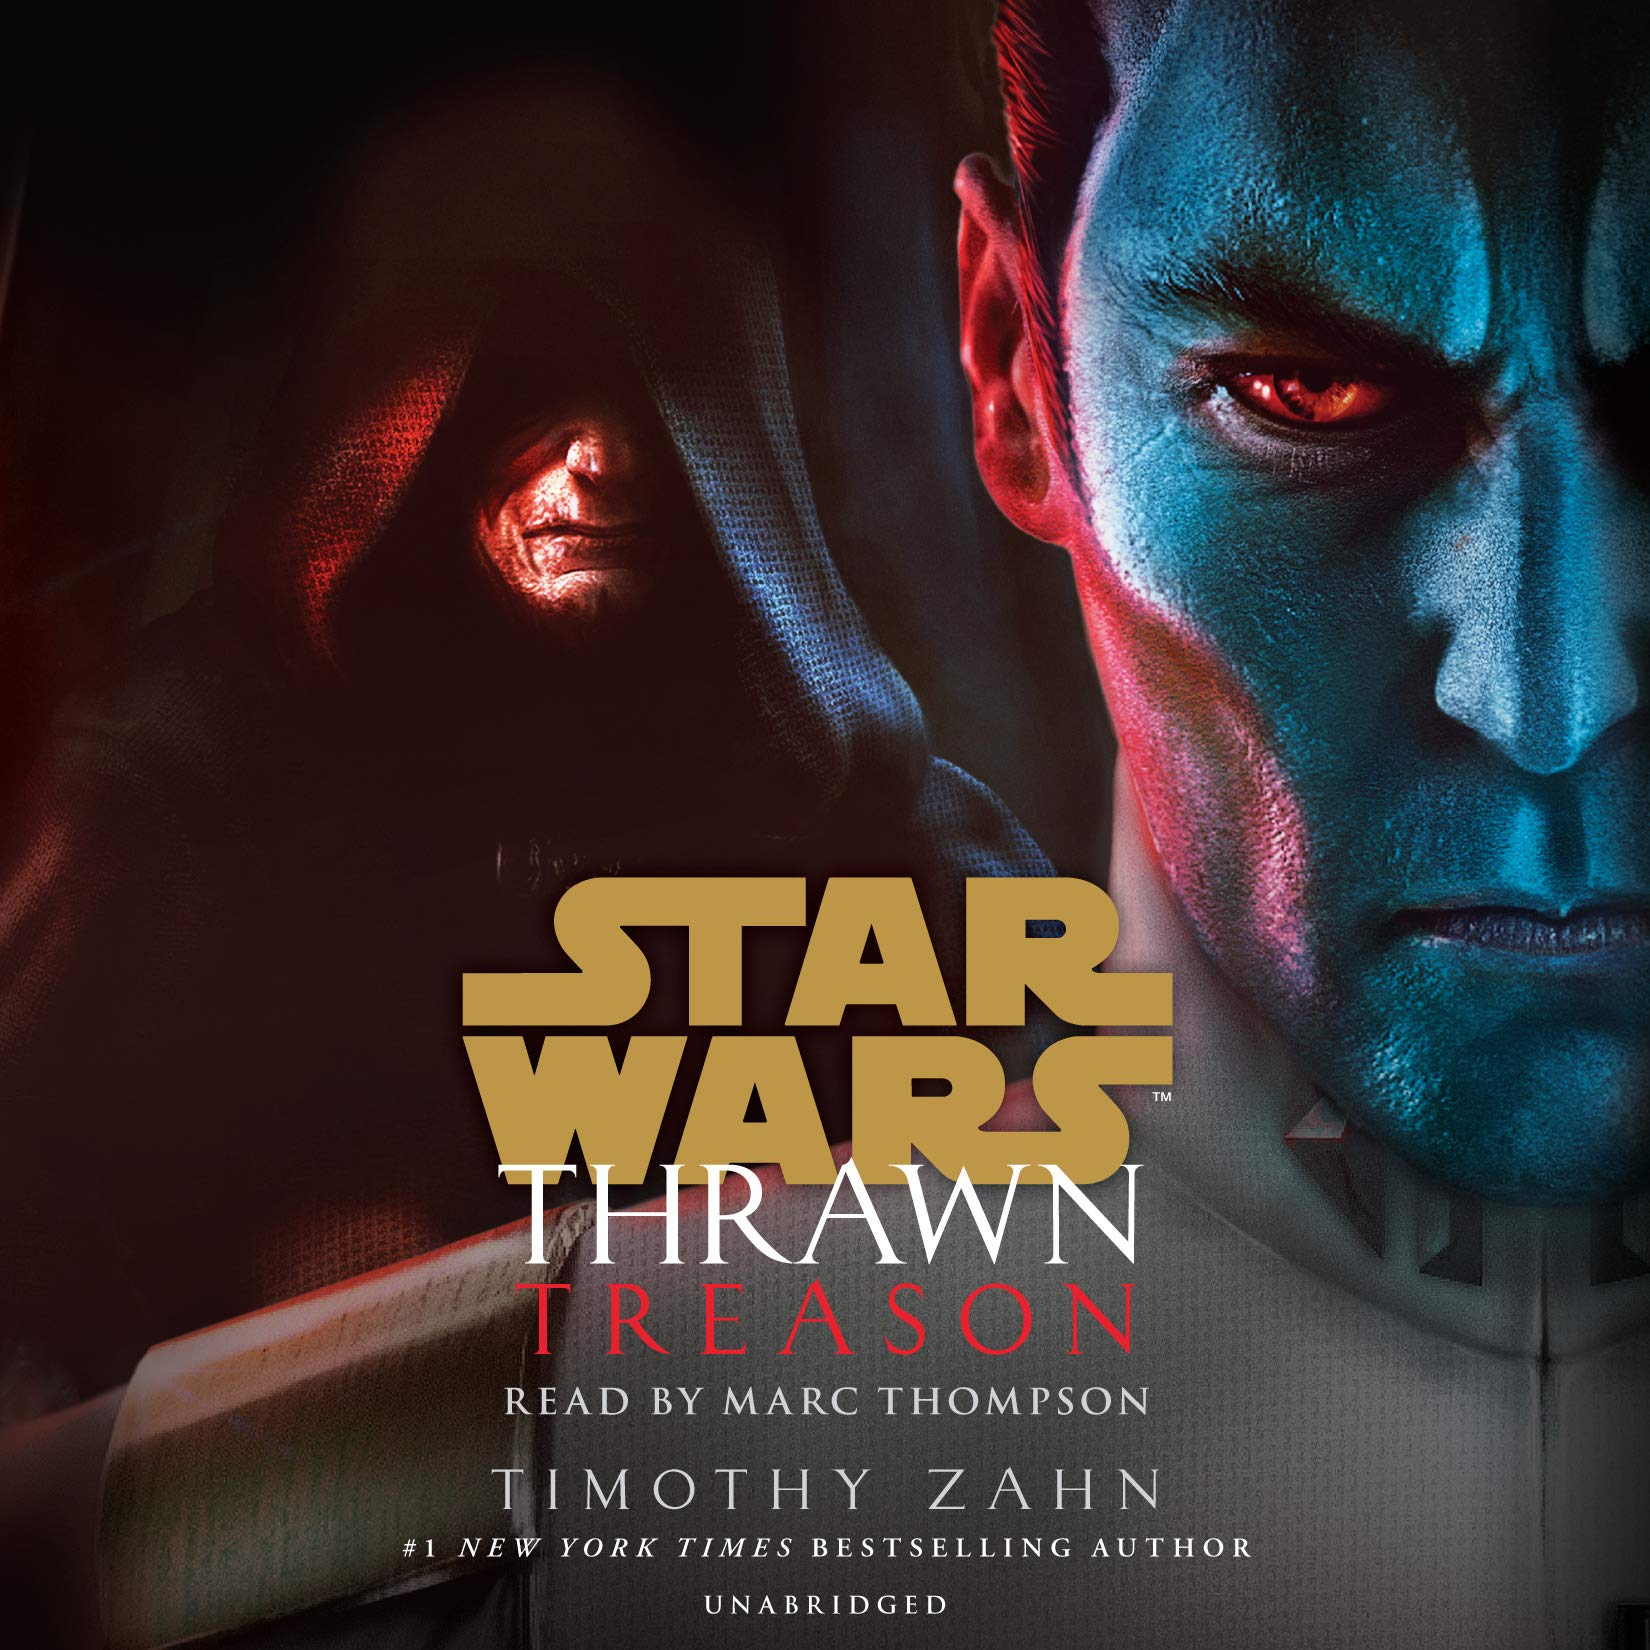 Star Wars Thrawn Treason Review